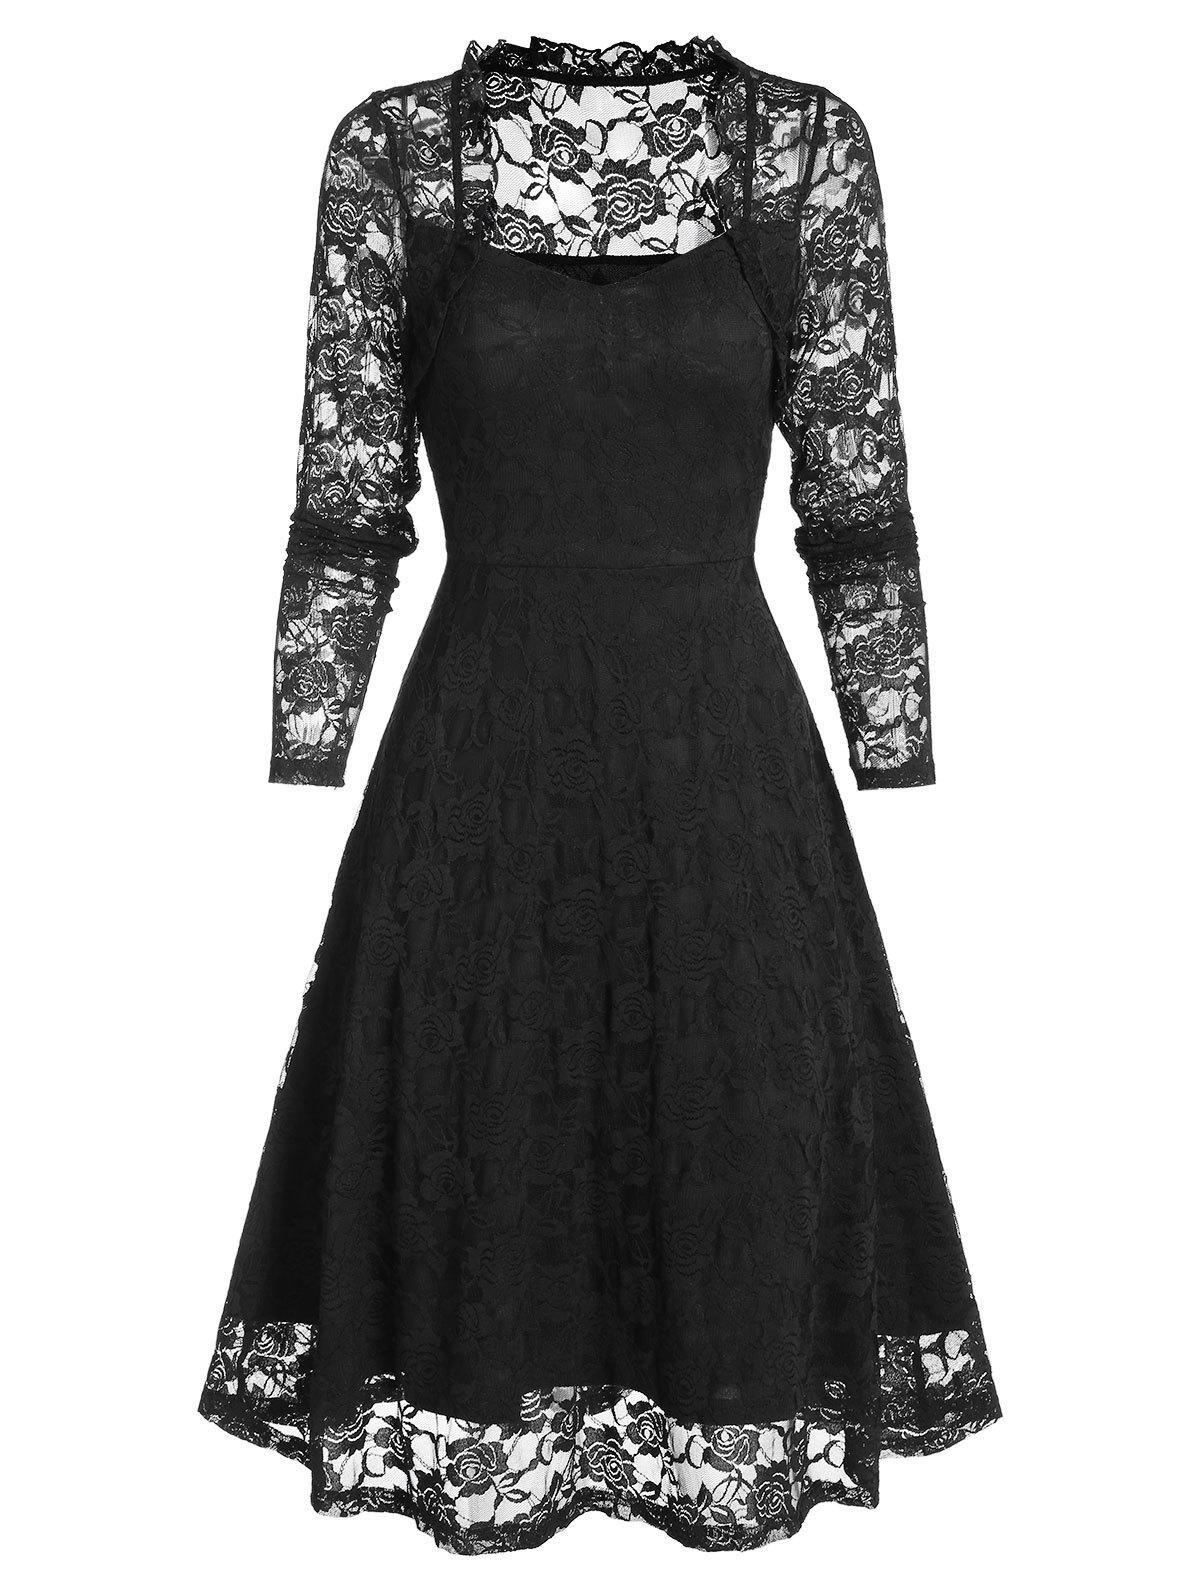 Floral Lace Ruffle Queen Anne Collar Dress - BLACK XL